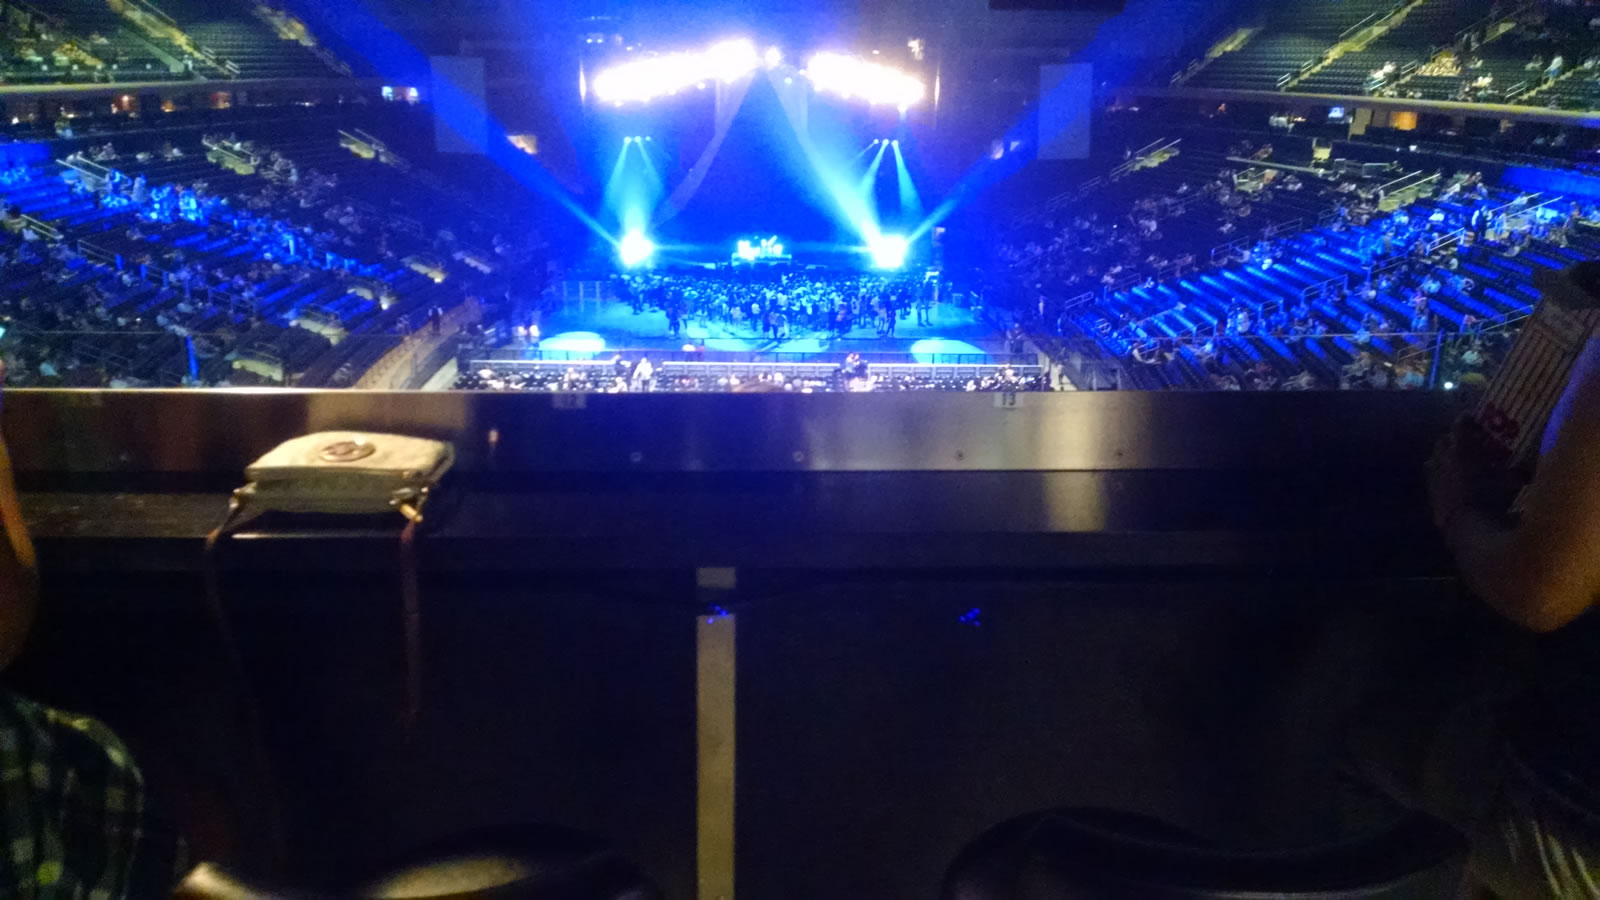 Madison Square Garden Section 204 Concert Seating